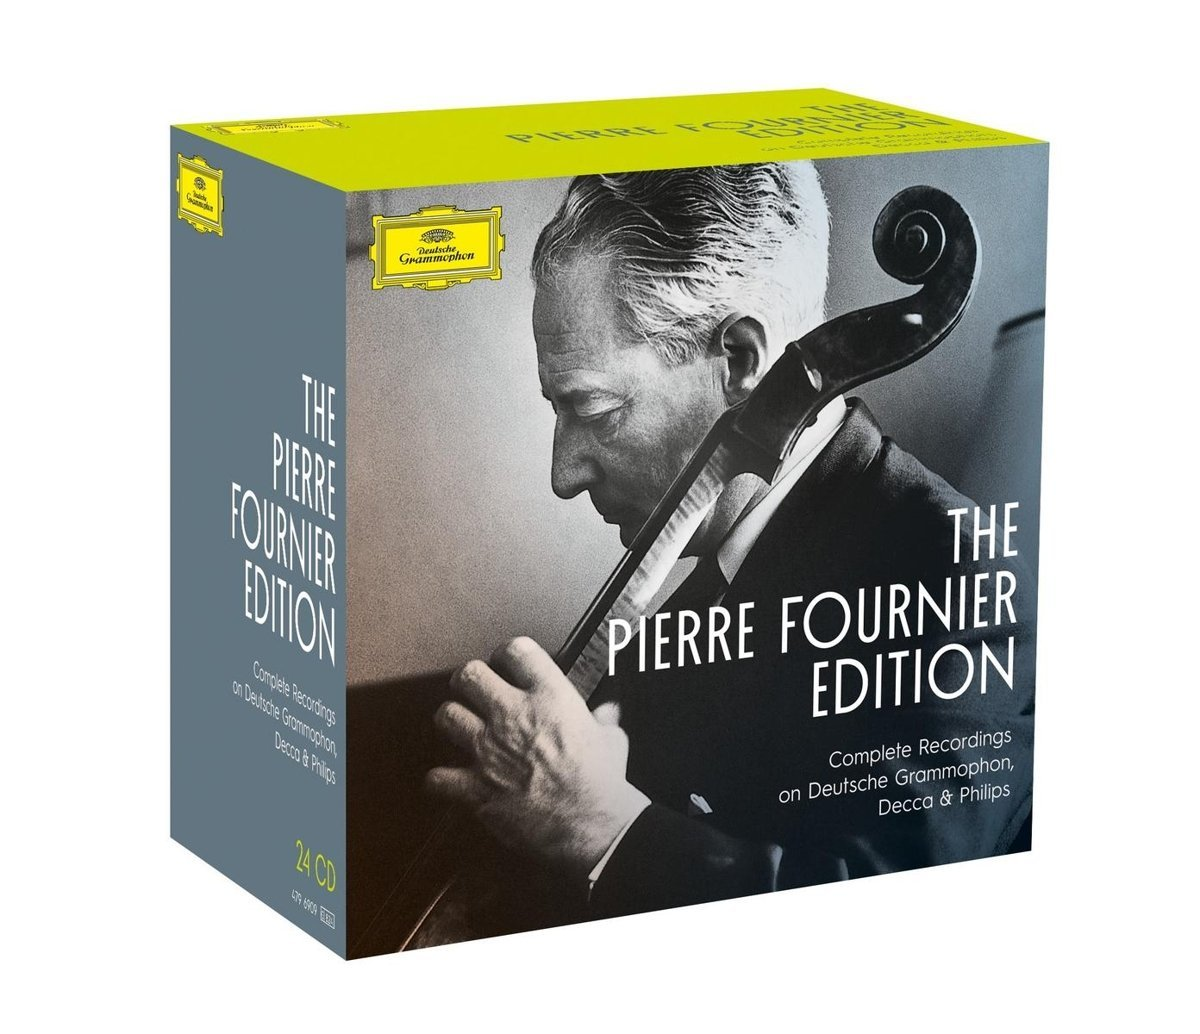 The Pierre Fournier Edition